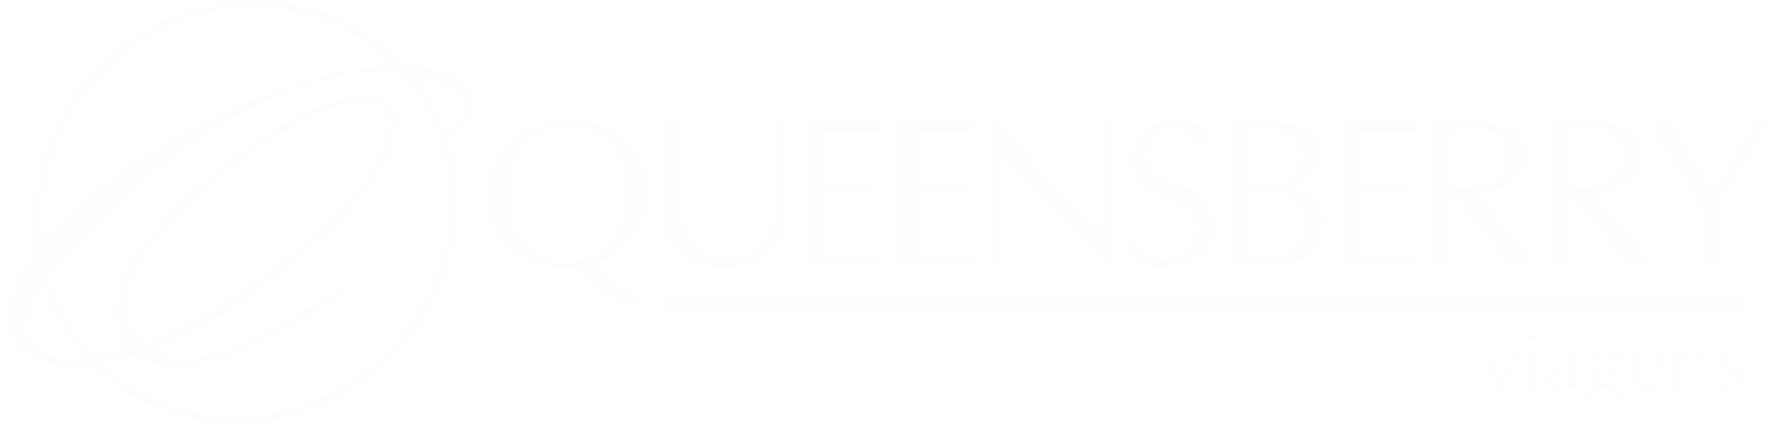 Queensberry Viagens Logo